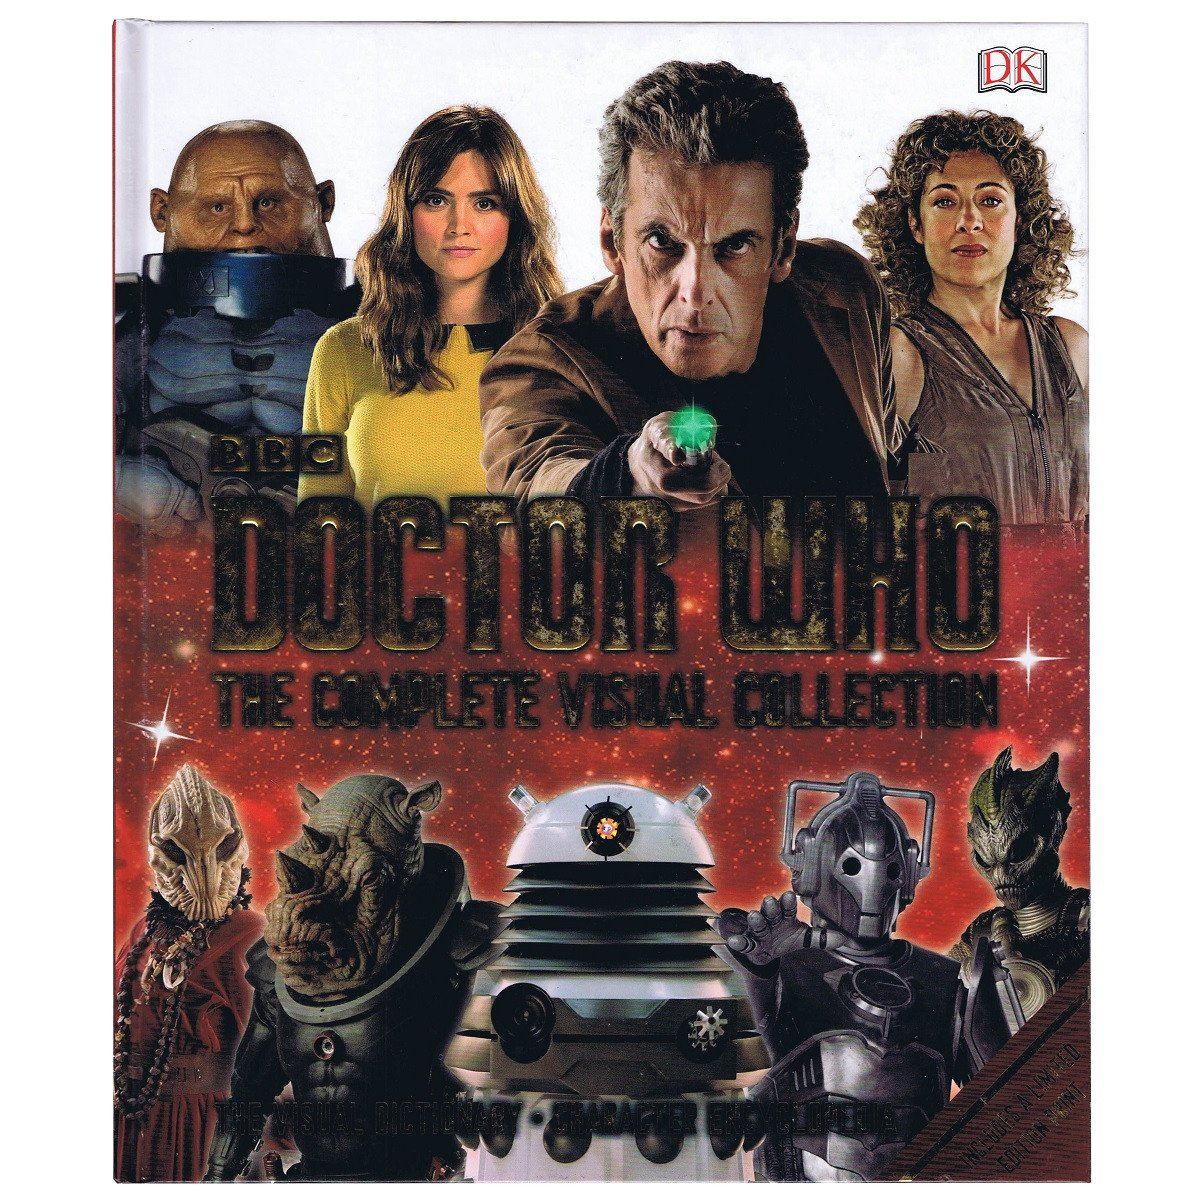 Doctor Who:The Complete Visual Collection